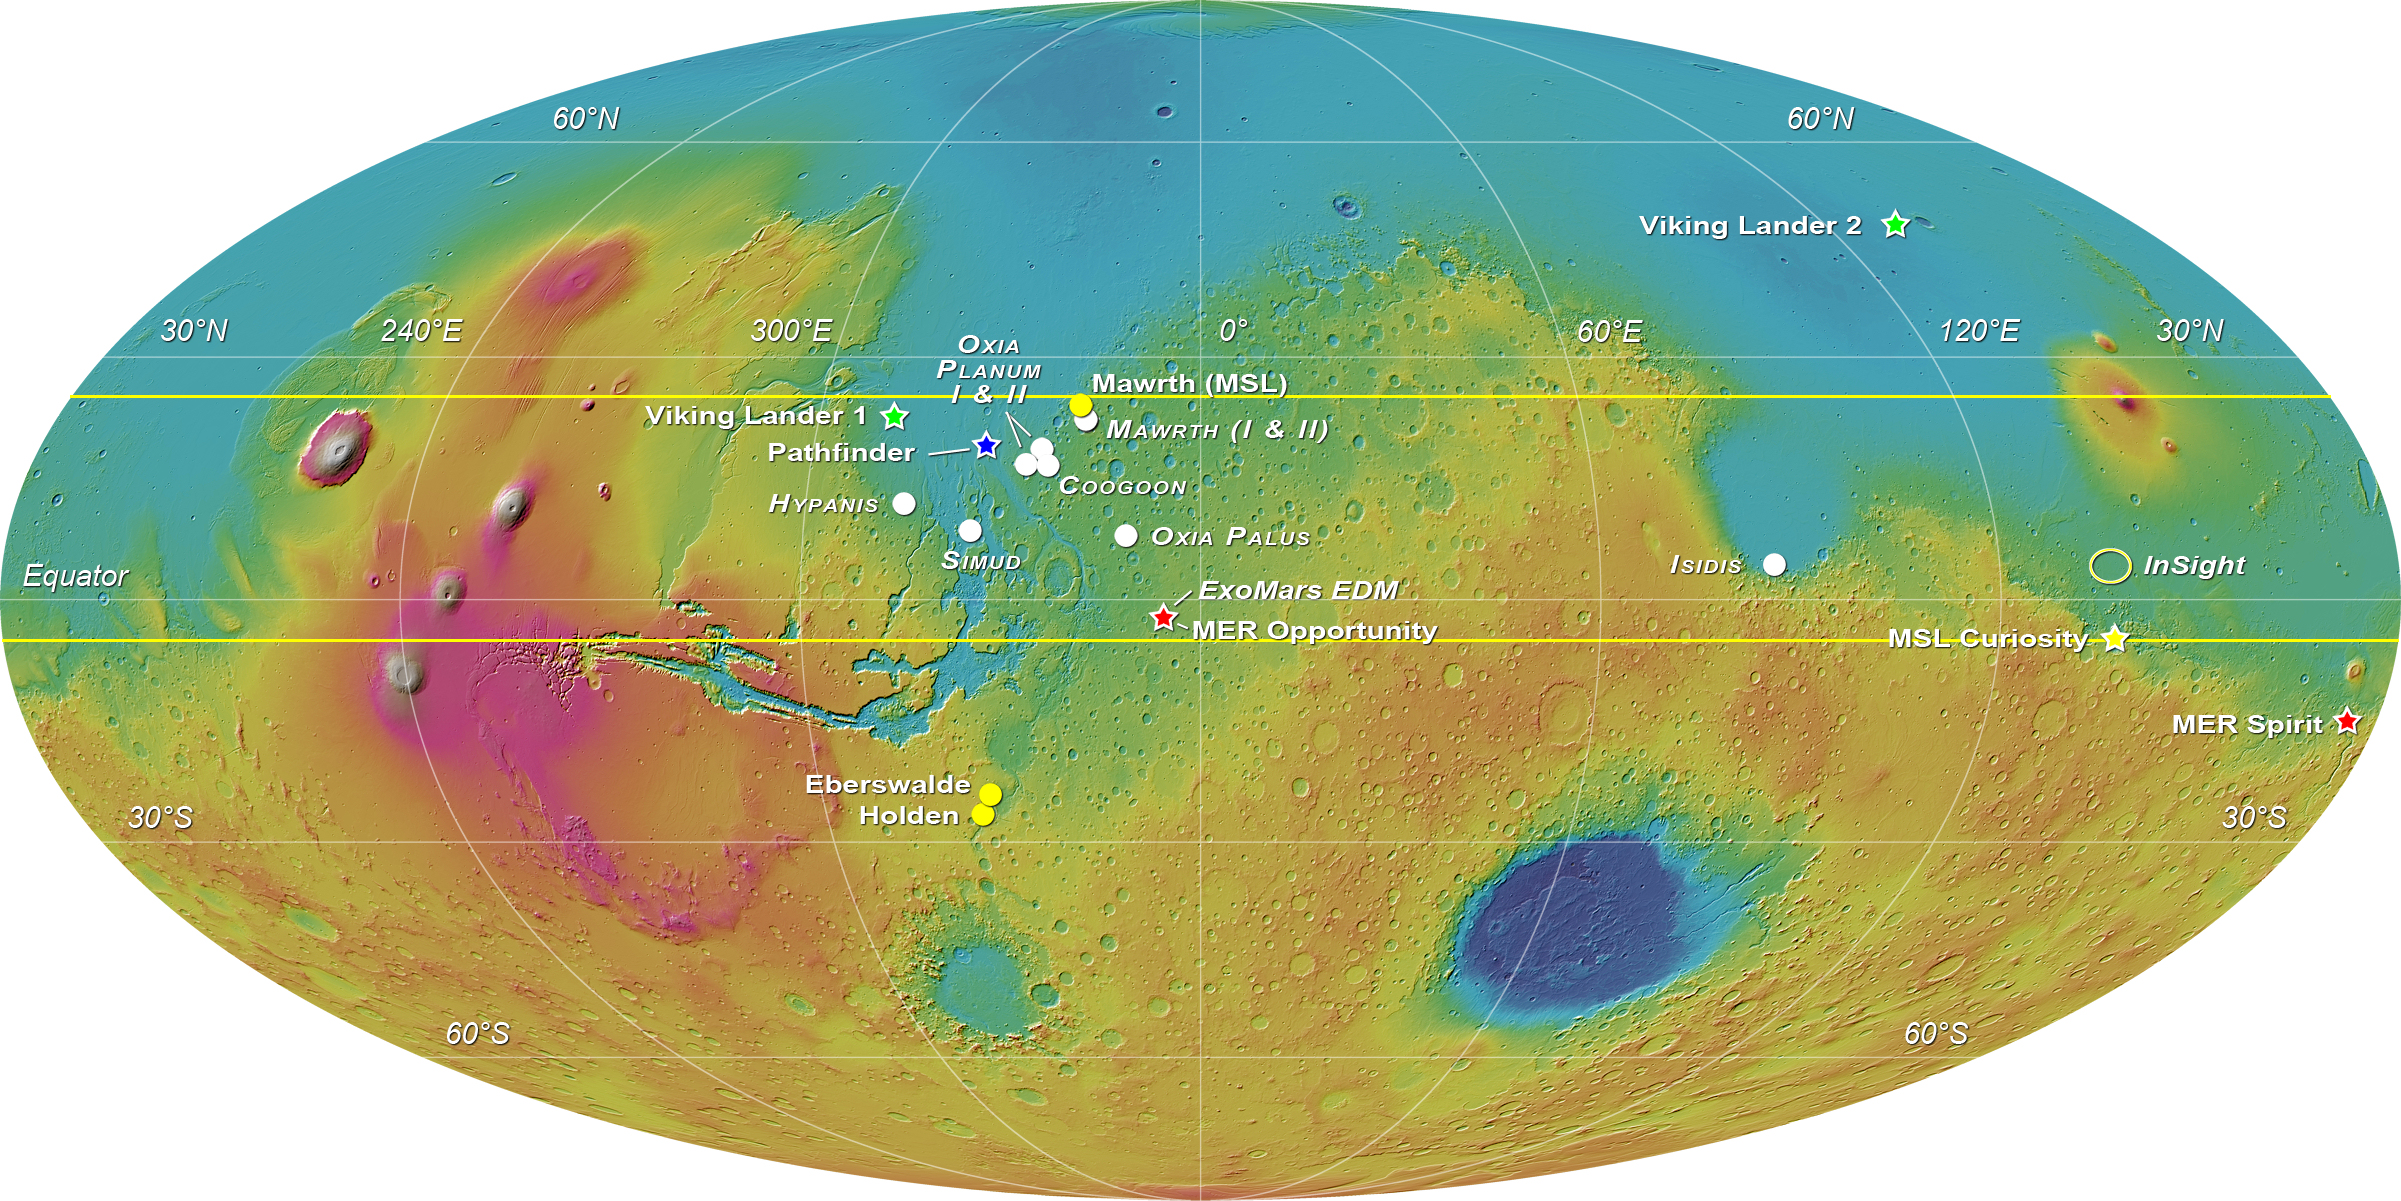 mars rover landing map - photo #17